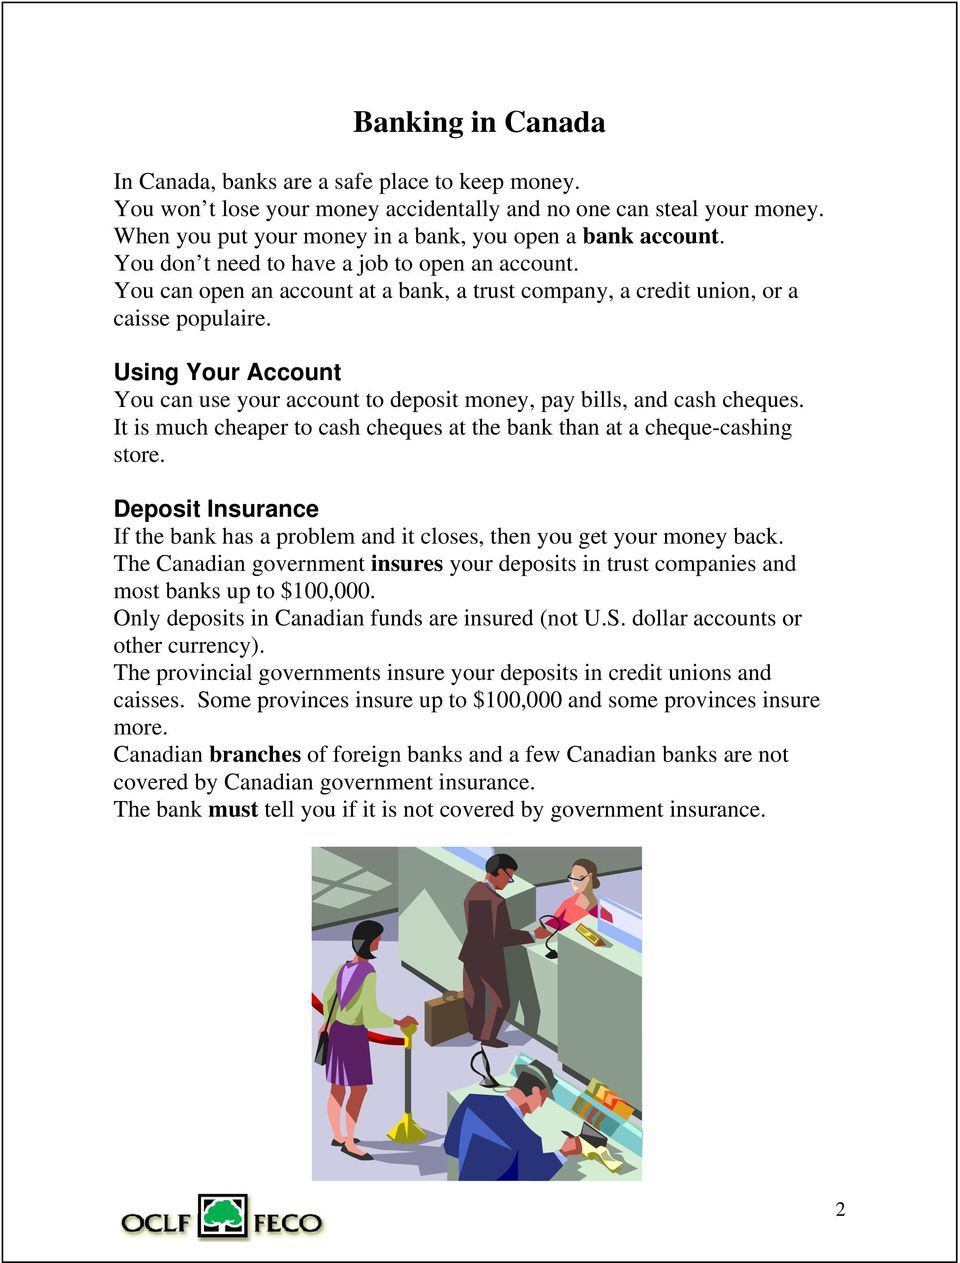 Using Your Account You can use your account to deposit money, pay bills, and cash cheques. It is much cheaper to cash cheques at the bank than at a cheque-cashing store.